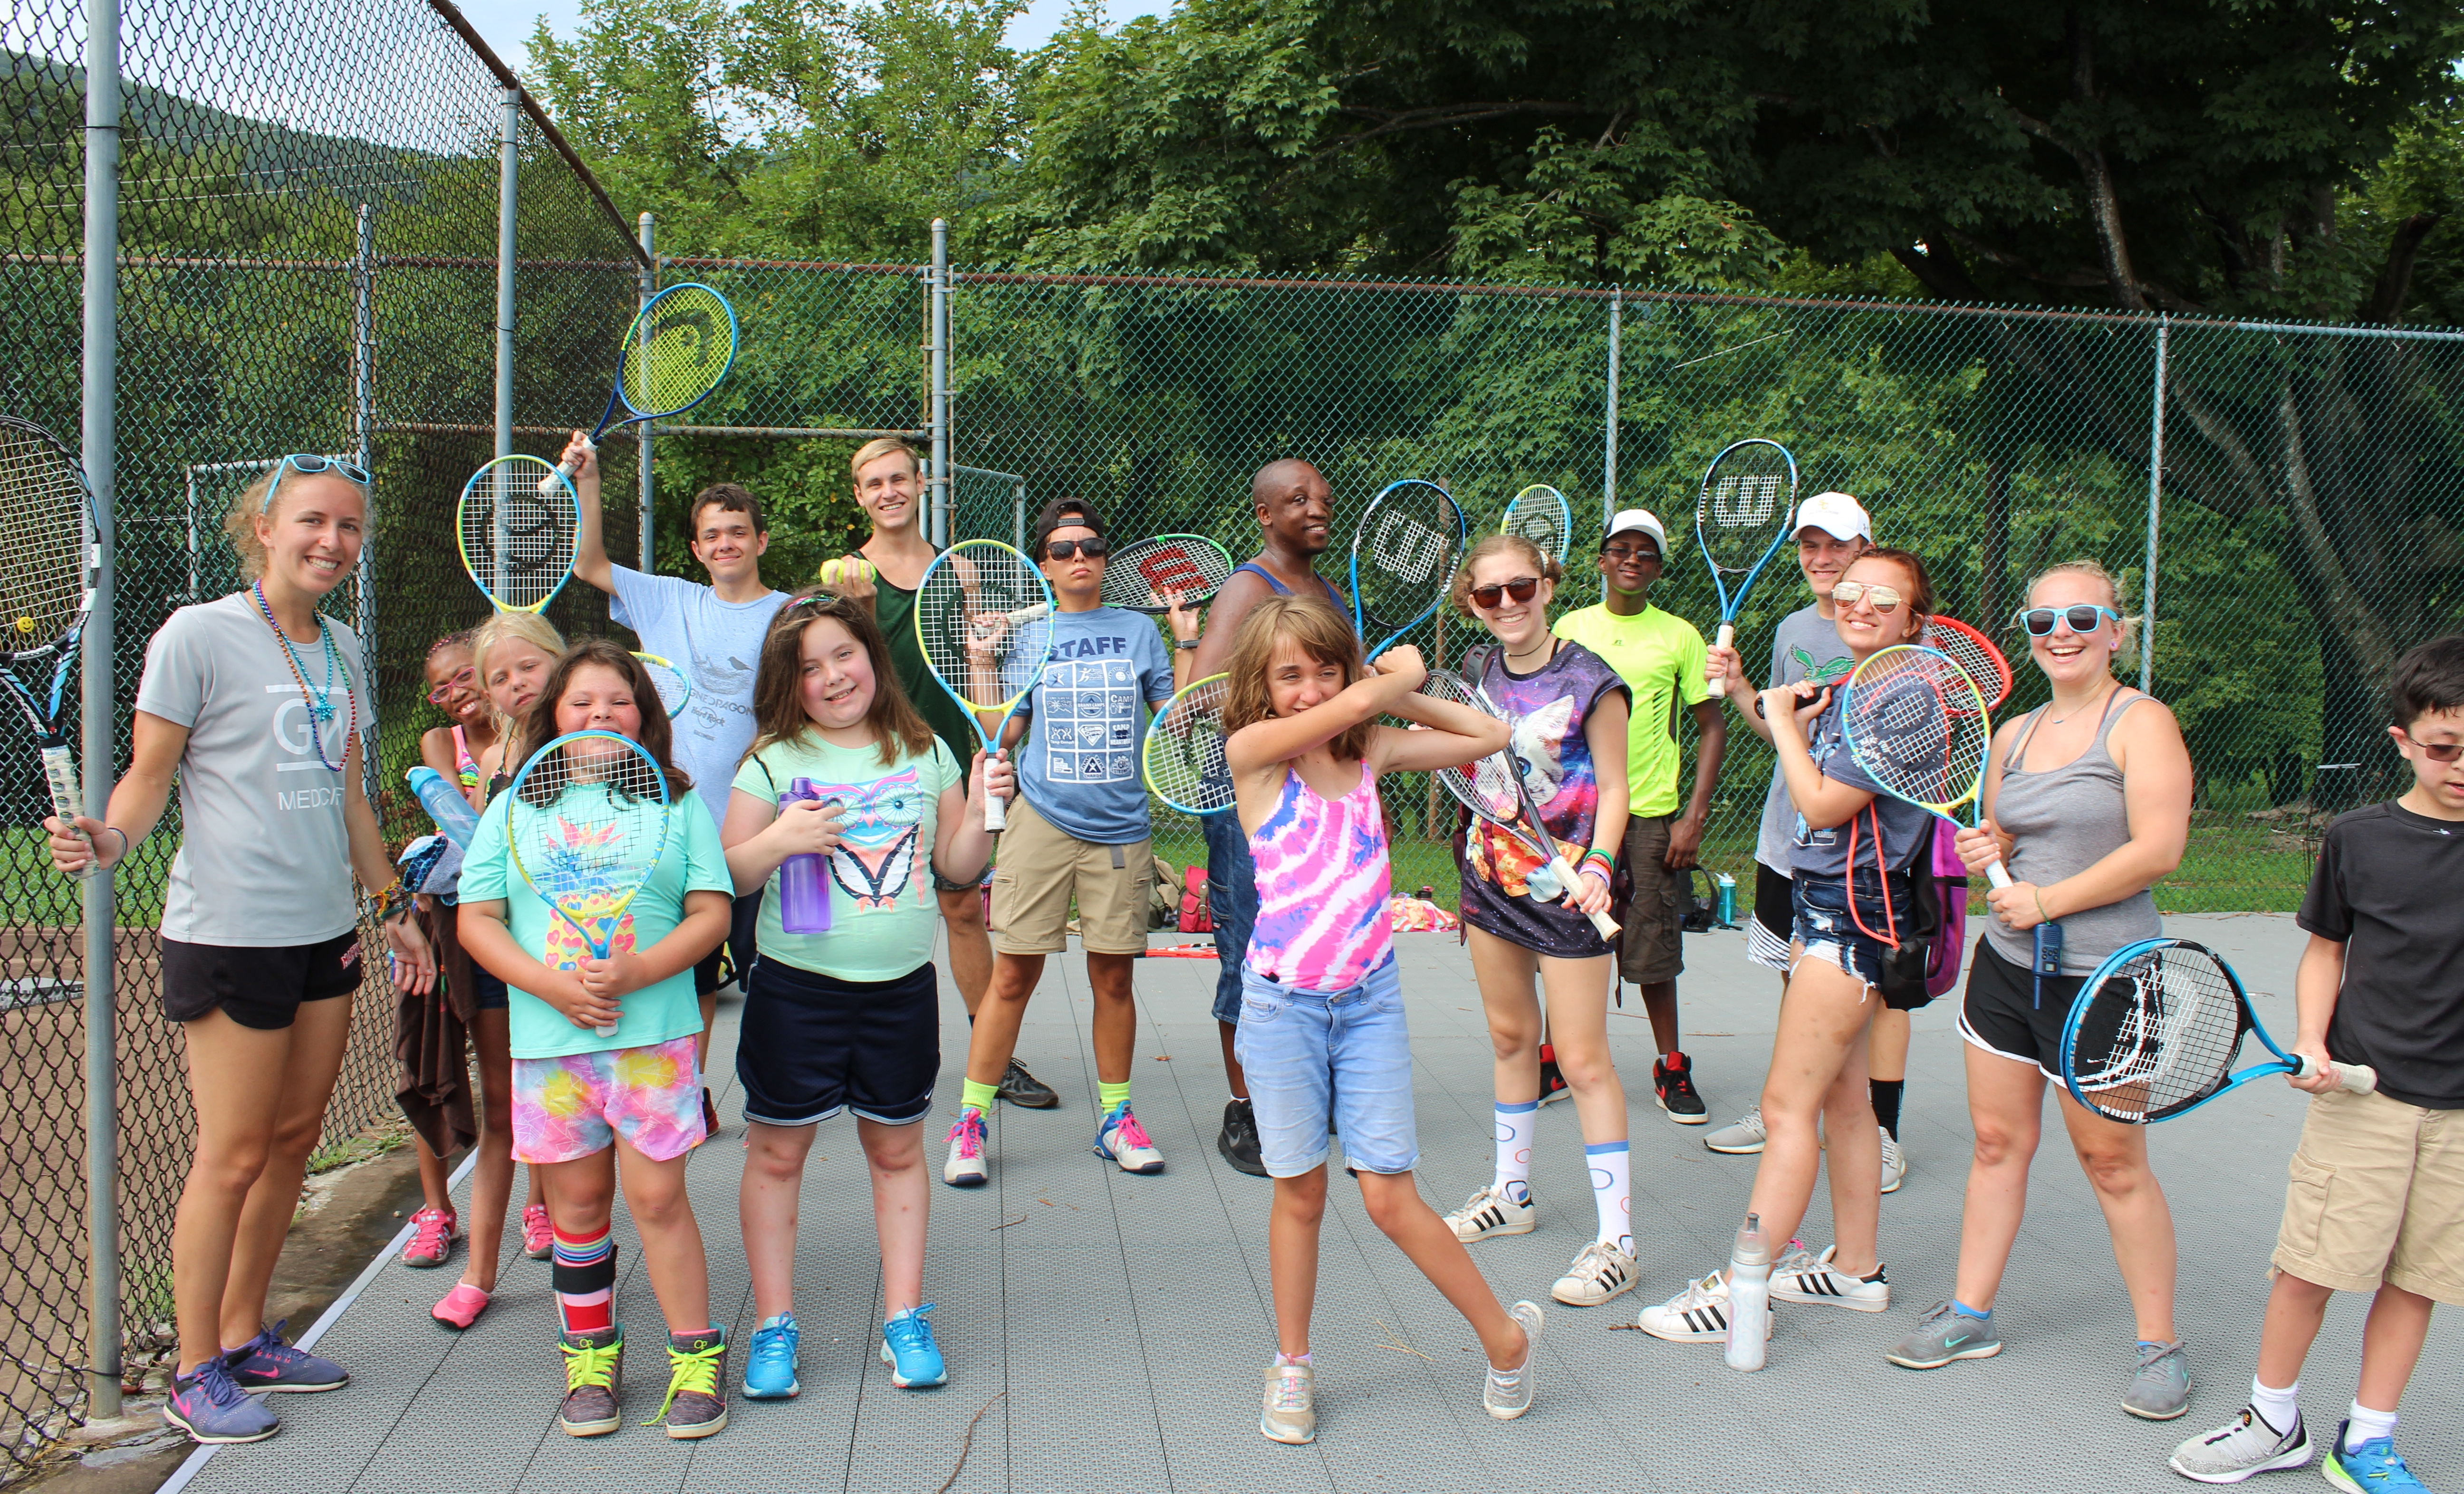 Campers hold tennis rackets and pose for a photo.